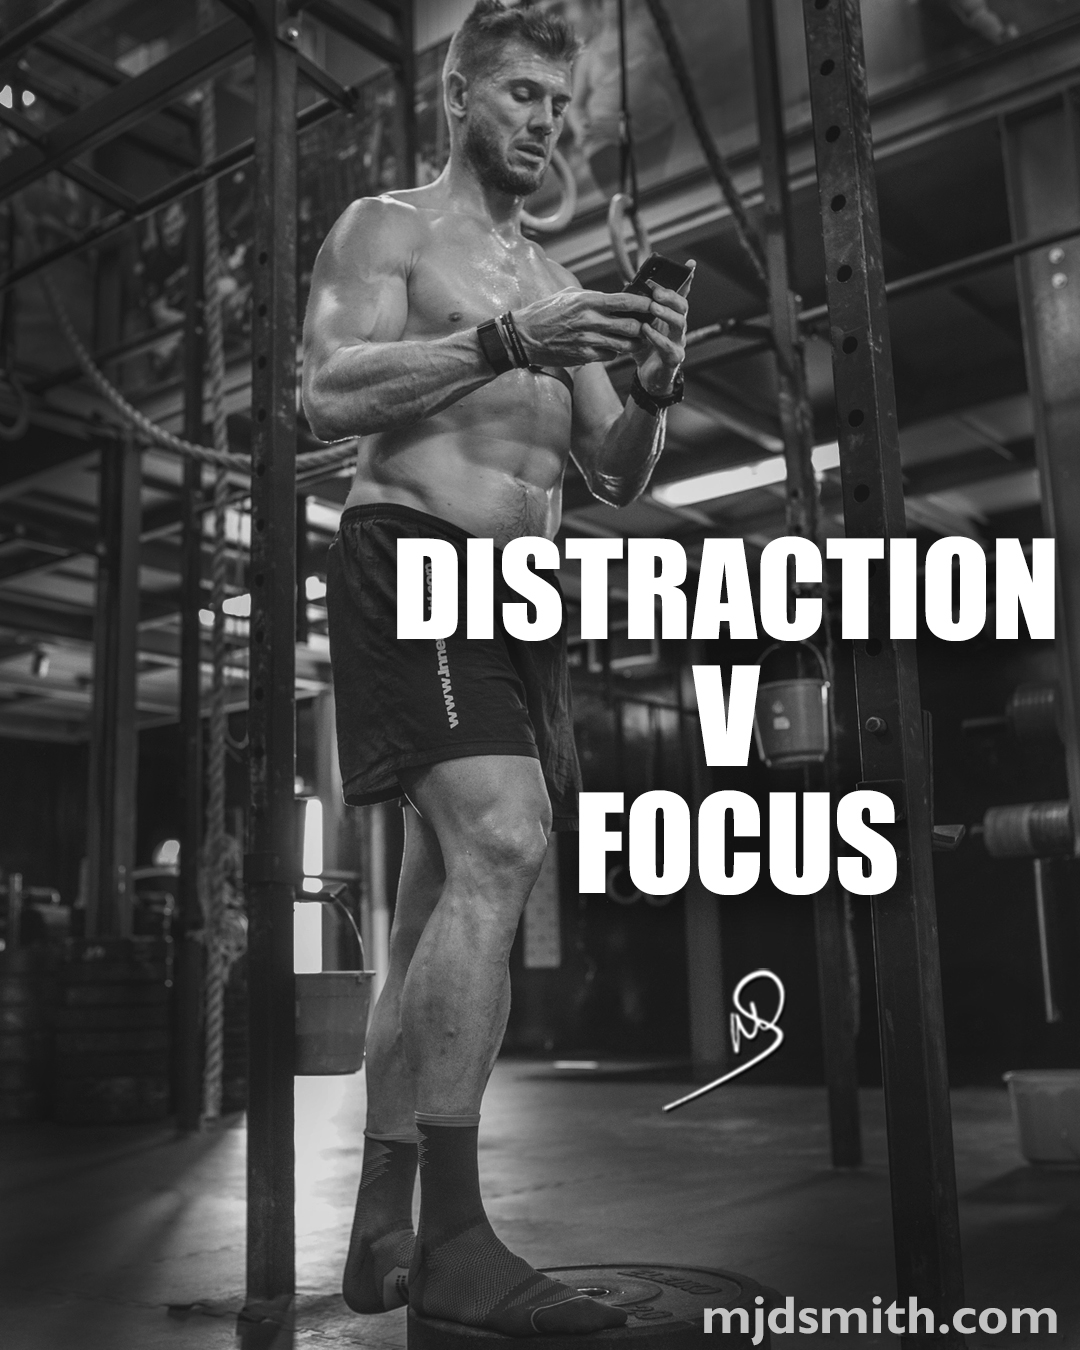 Distraction V focus